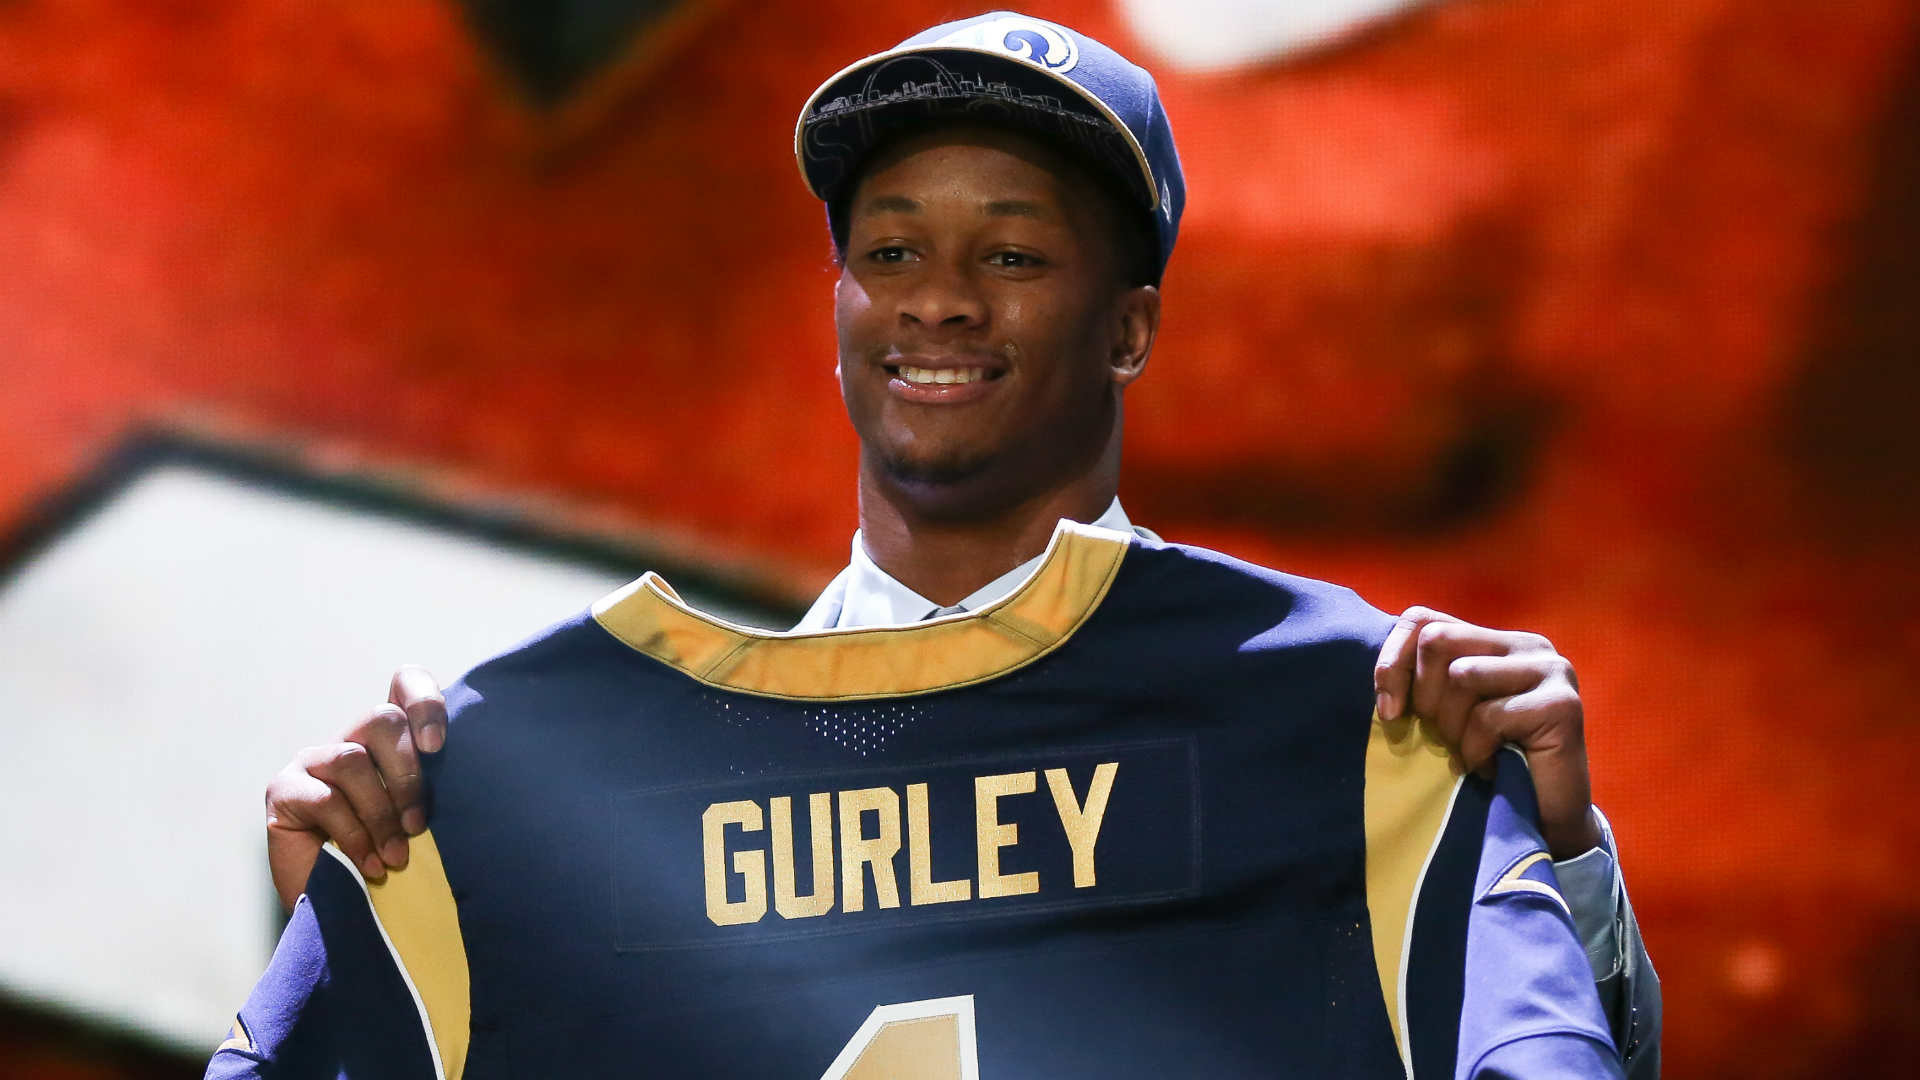 1920x1080 Todd Gurley may not be ready for Rams' season opener | NFL | Sporting News